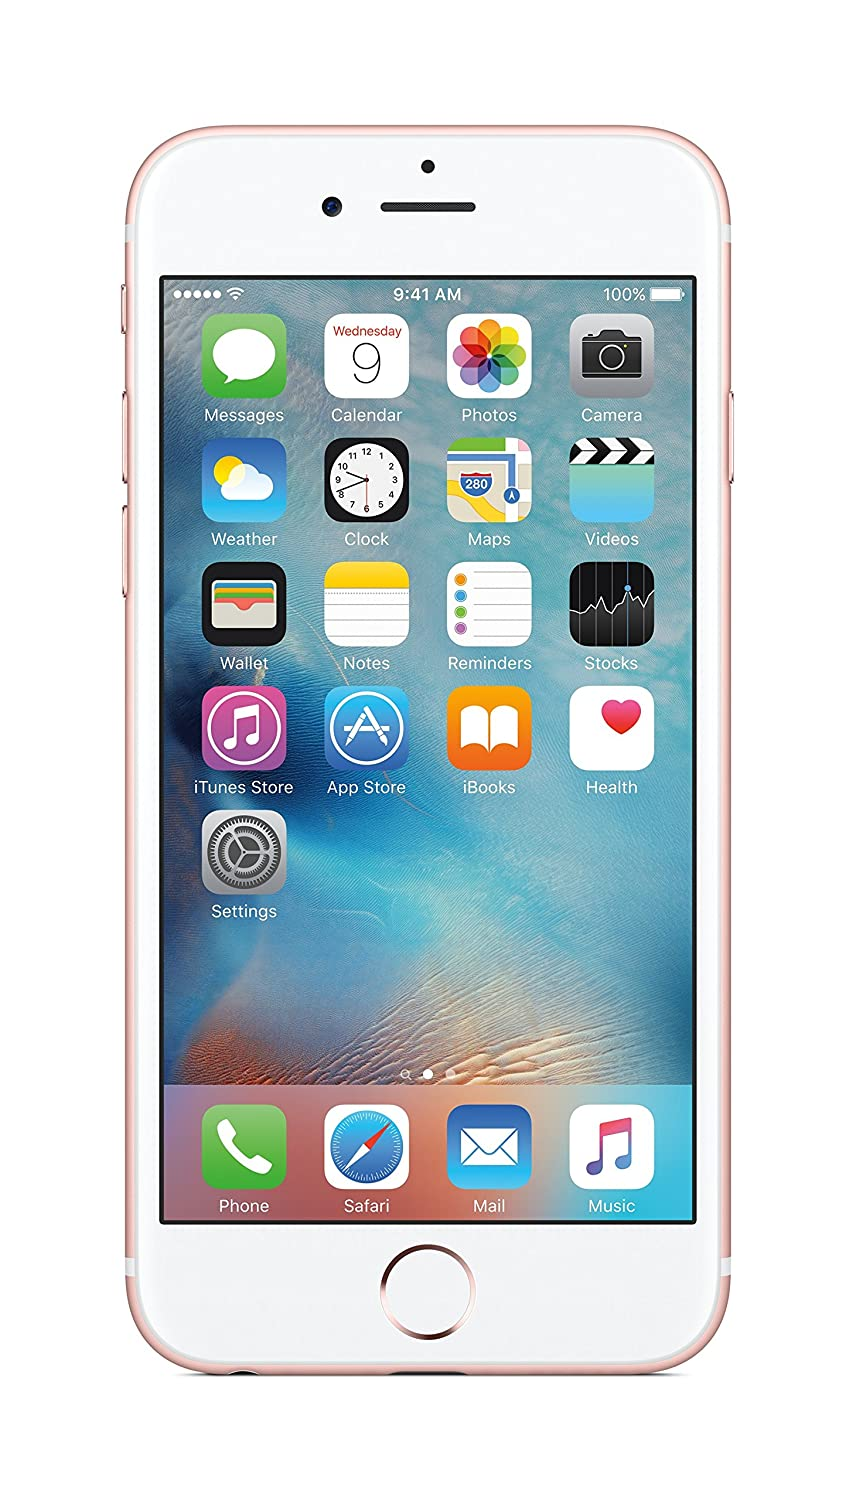 Iphone 5s 16gb brand new unlocked genuine apple iphone best price in - Iphone 5s 16gb Brand New Unlocked Genuine Apple Iphone Best Price In 52